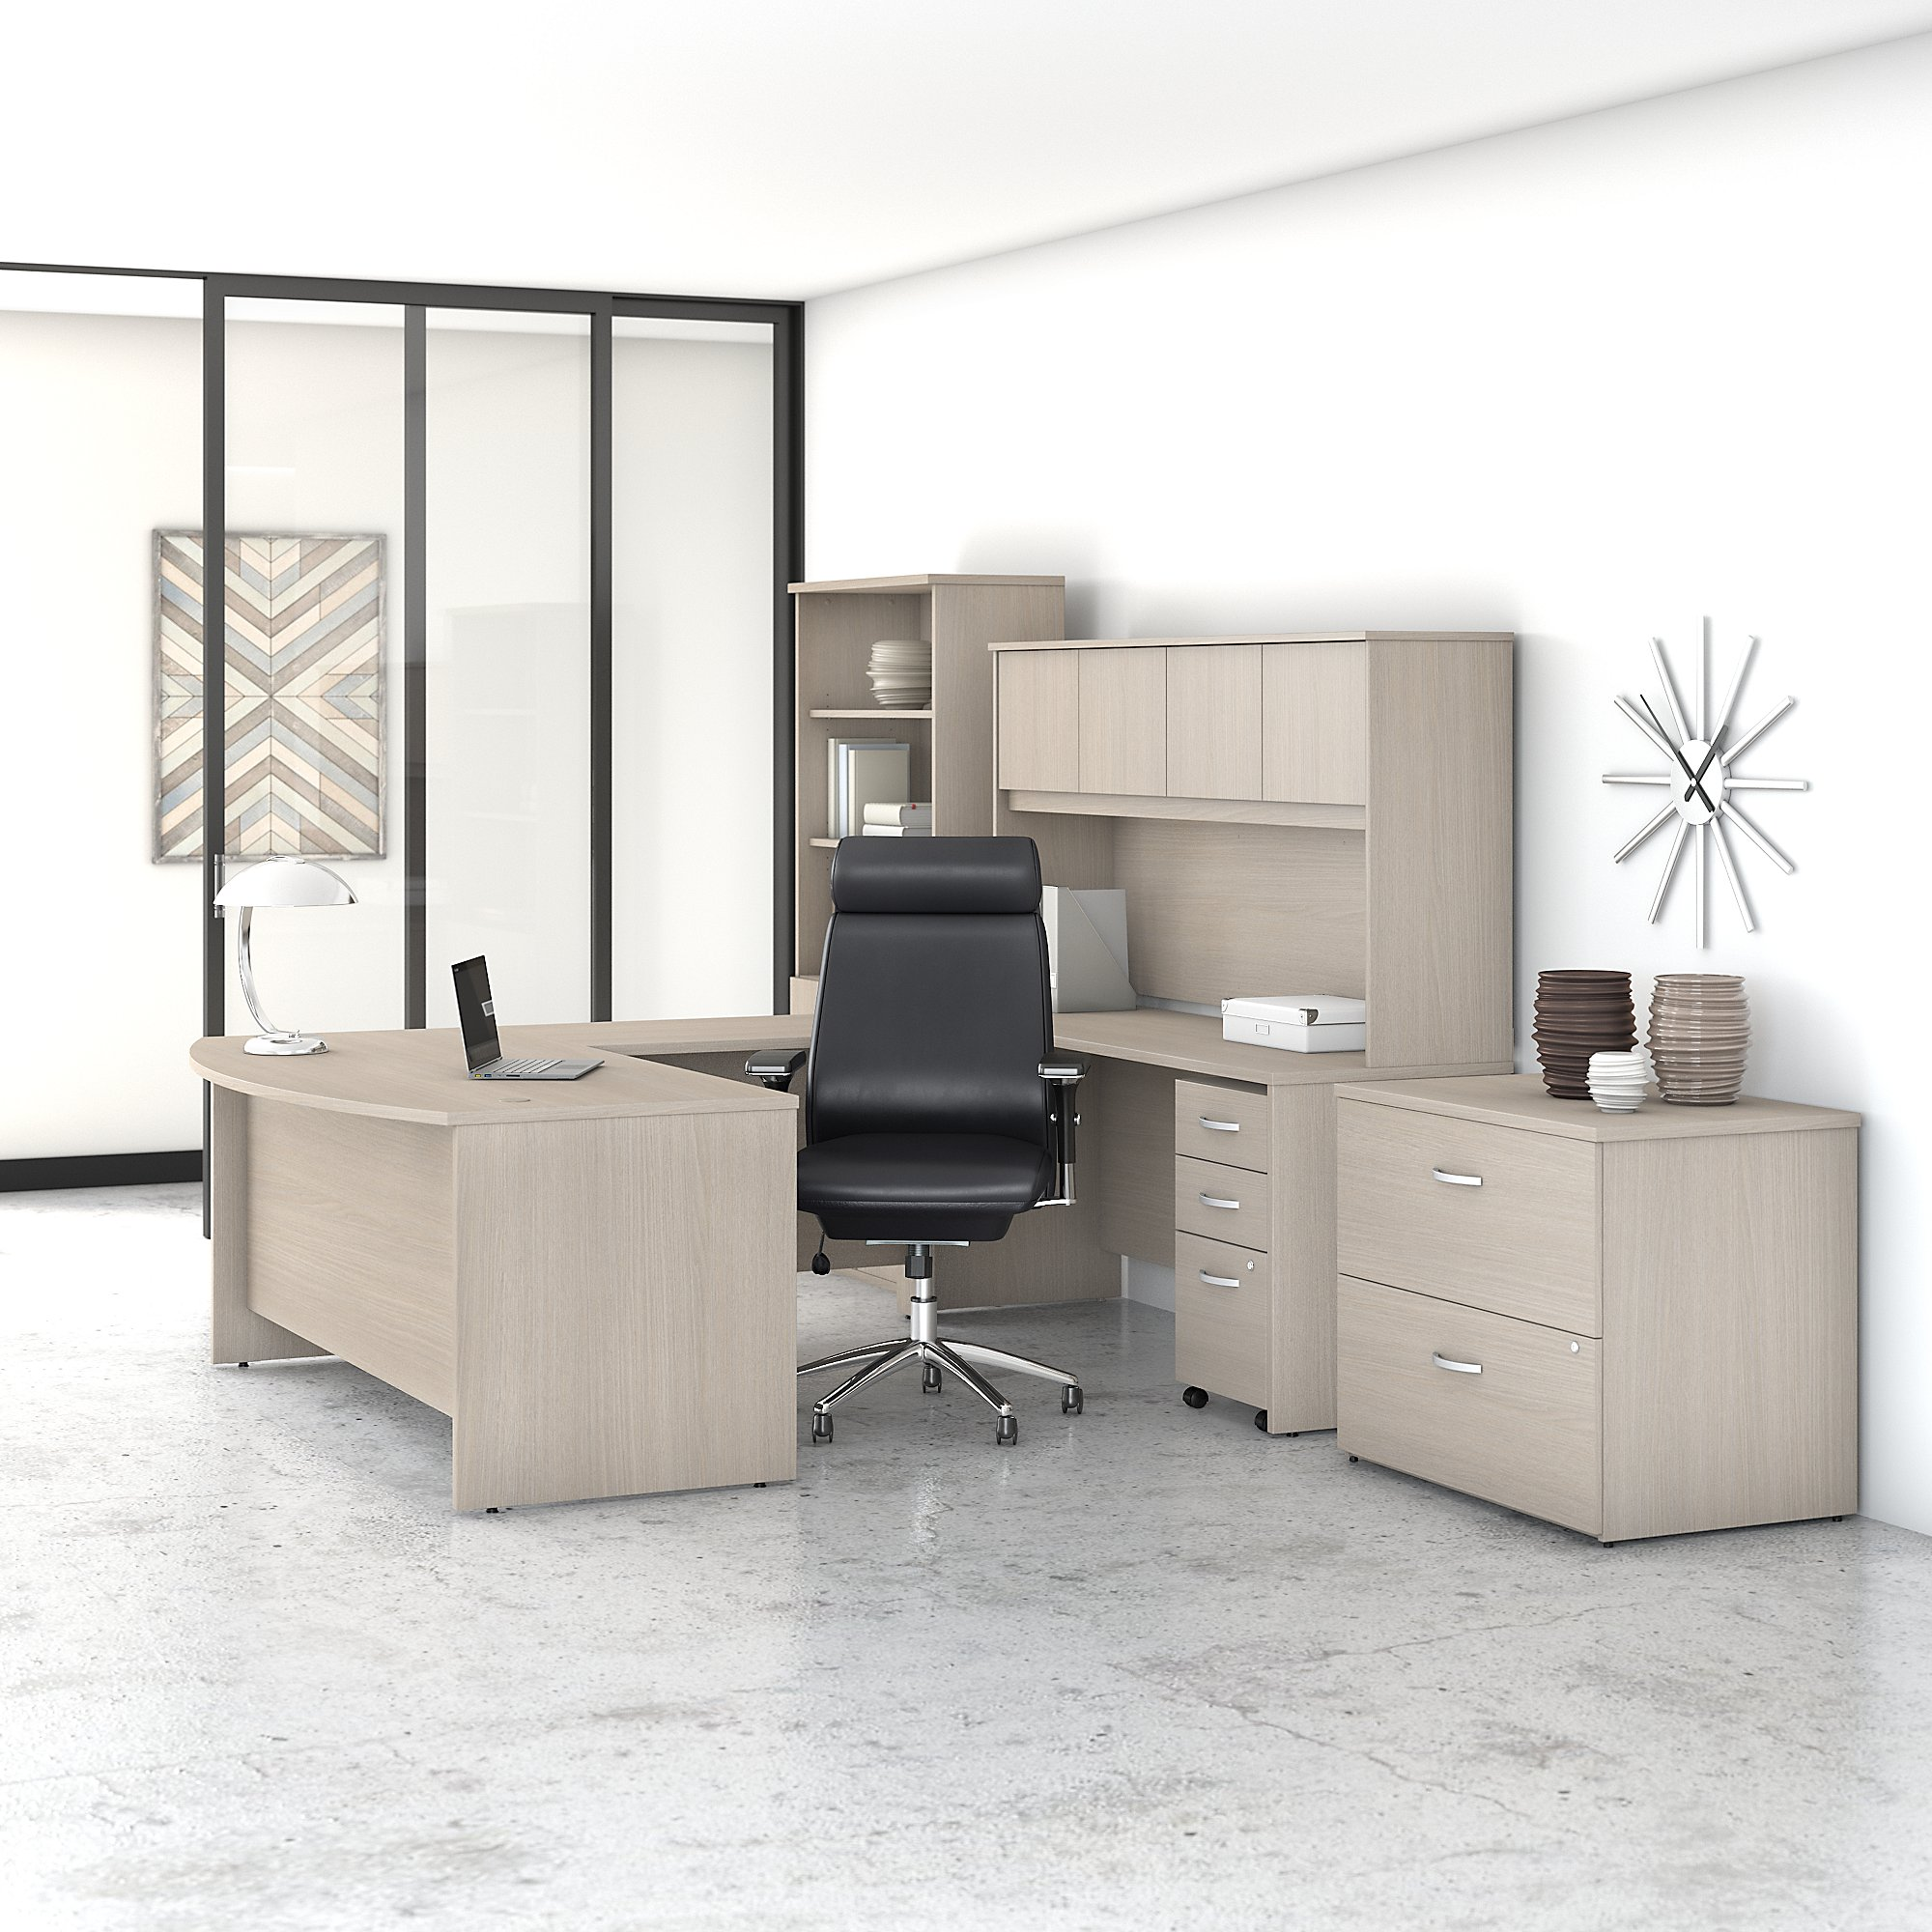 Image of: Bush Business Furniture Studio C Modern U Shaped Desk With Hutch Bookcase File Cabinets And High Back Office Chair